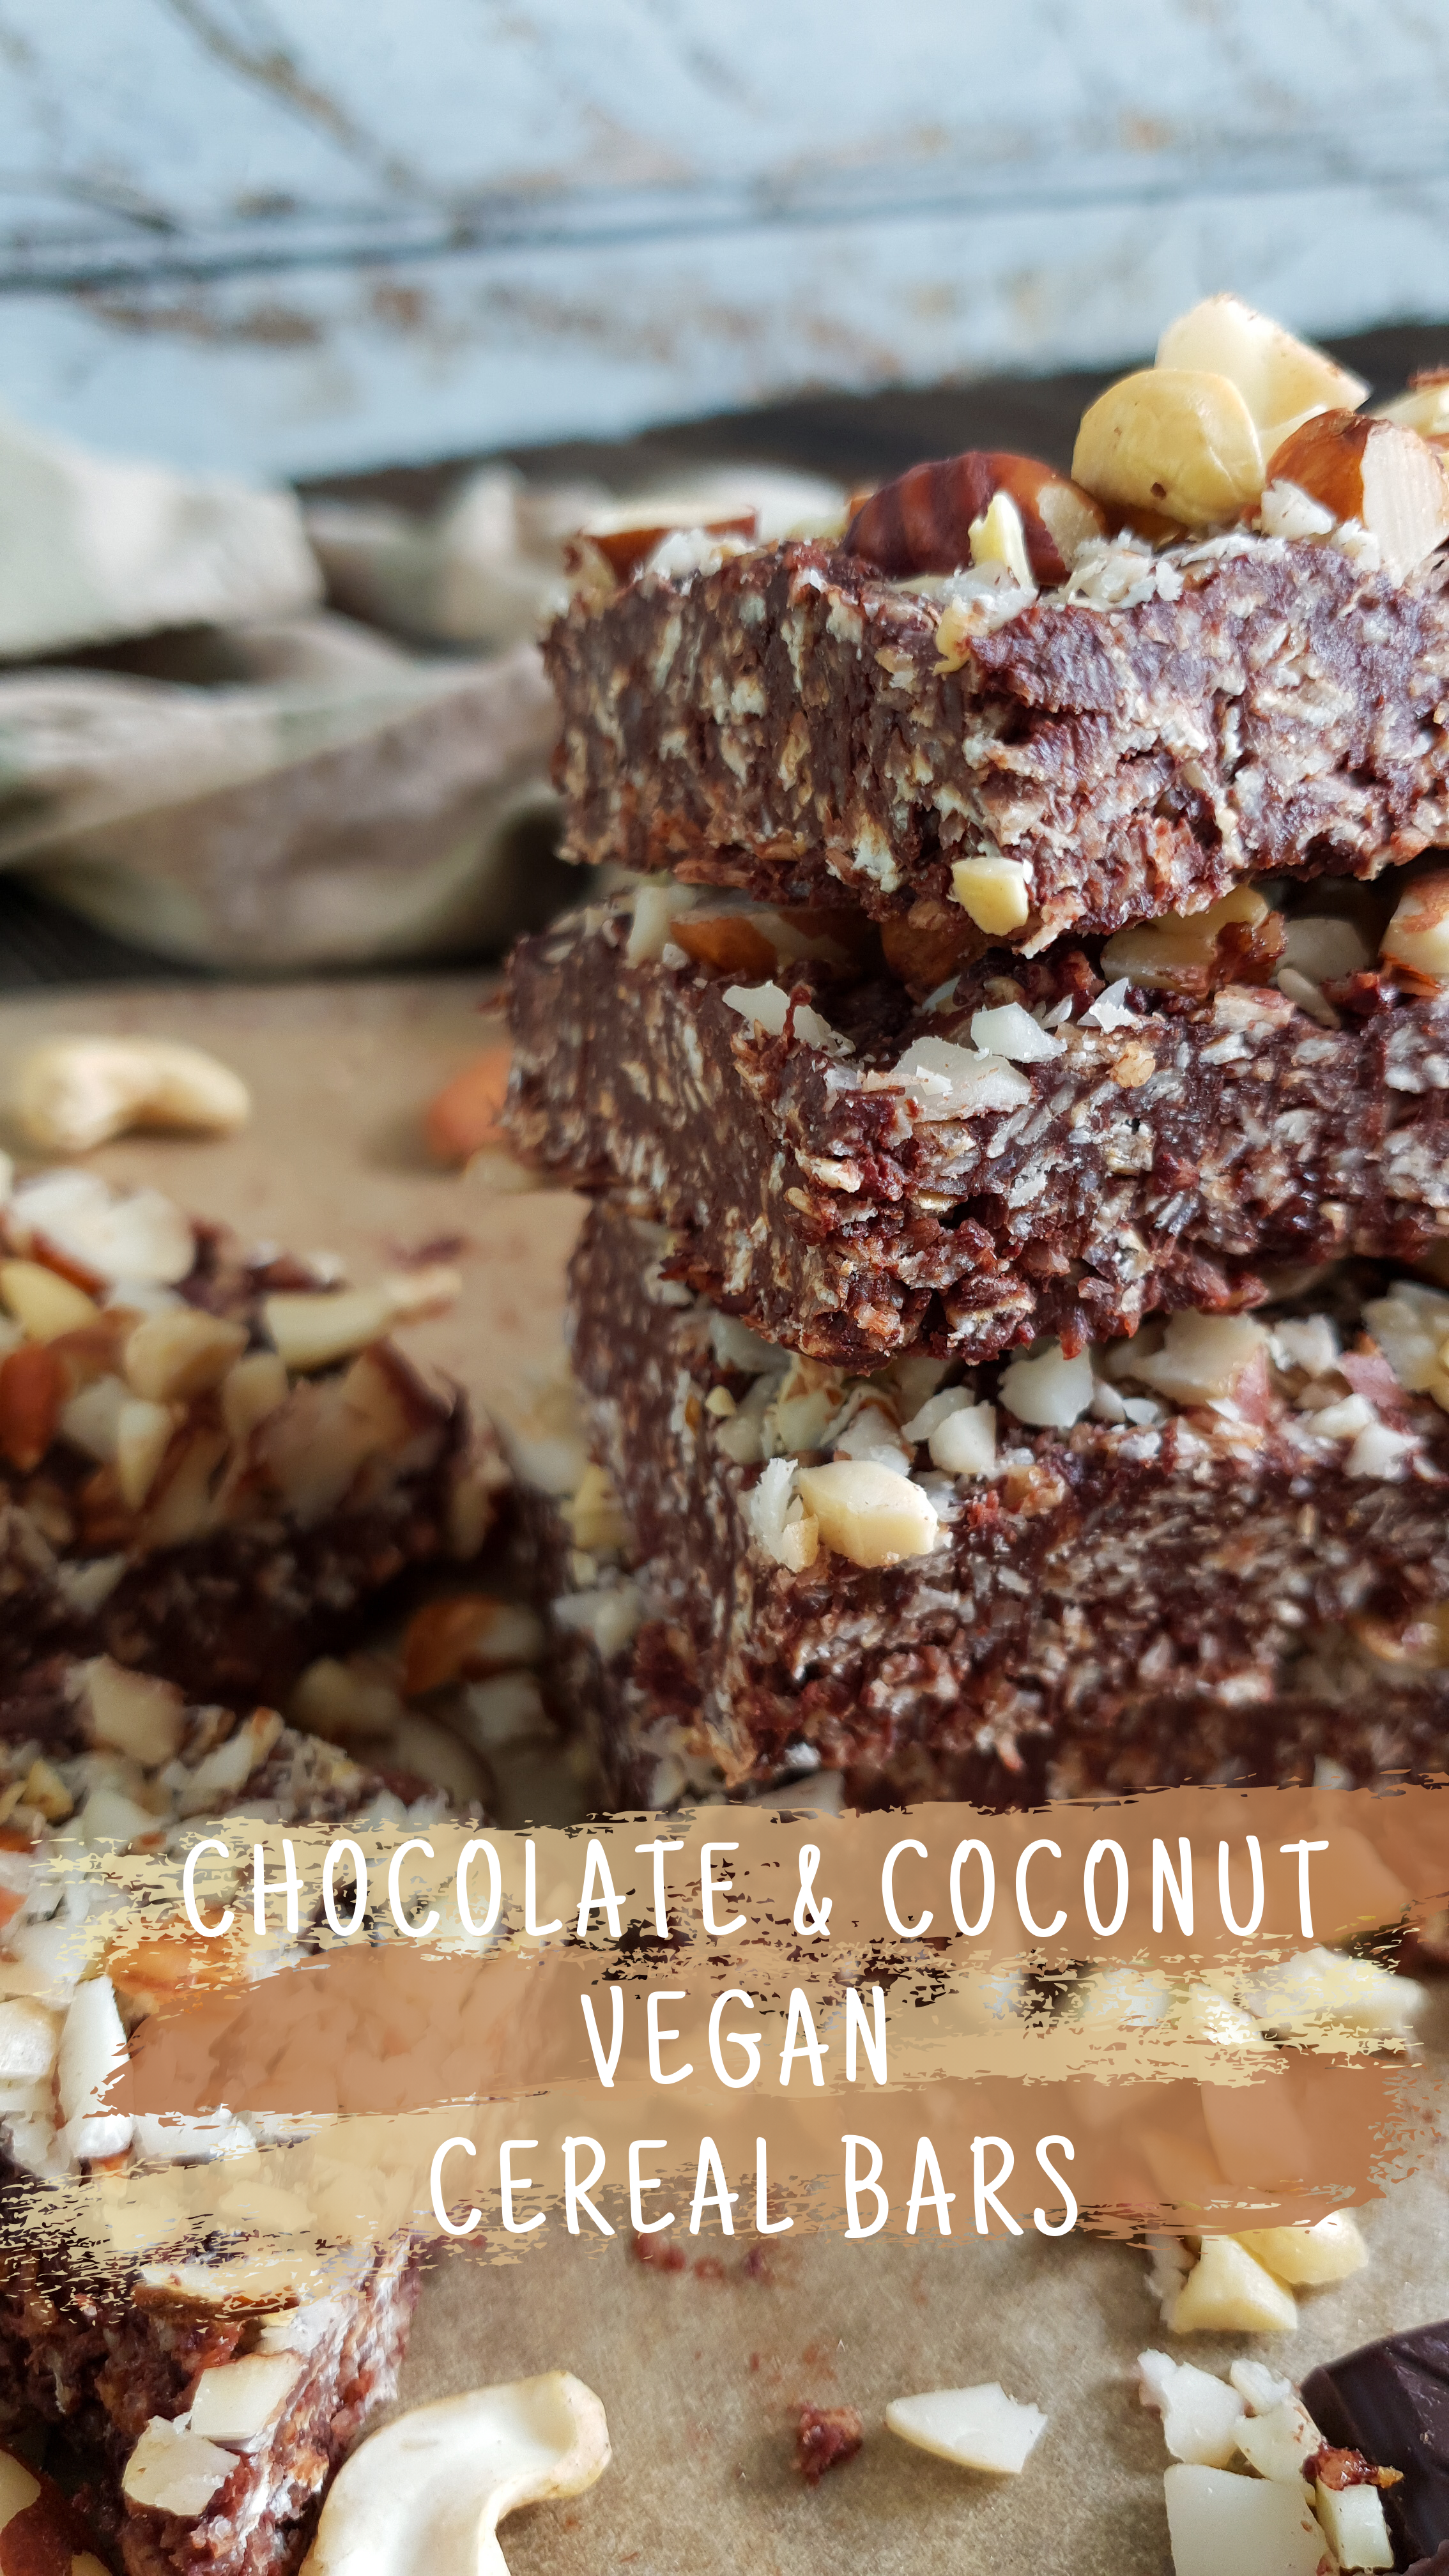 Chocolate & Coconut Cereal Bars